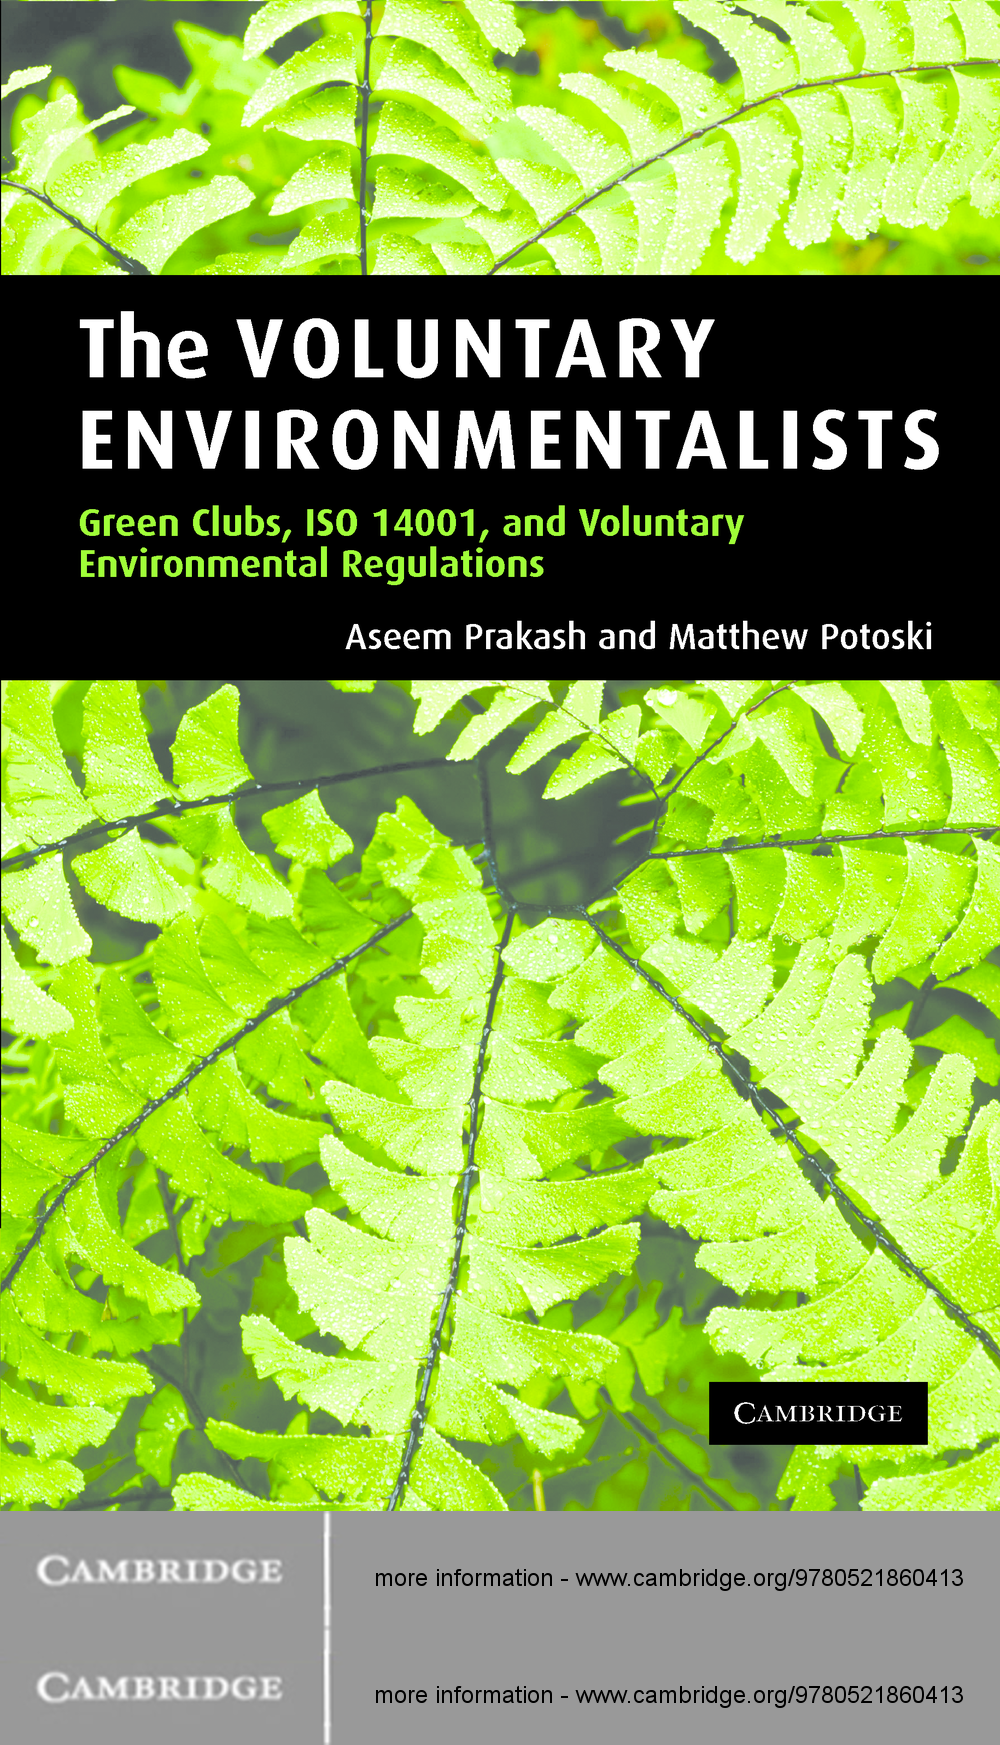 The Voluntary Environmentalists Green Clubs, ISO 14001, and Voluntary Environmental Regulations